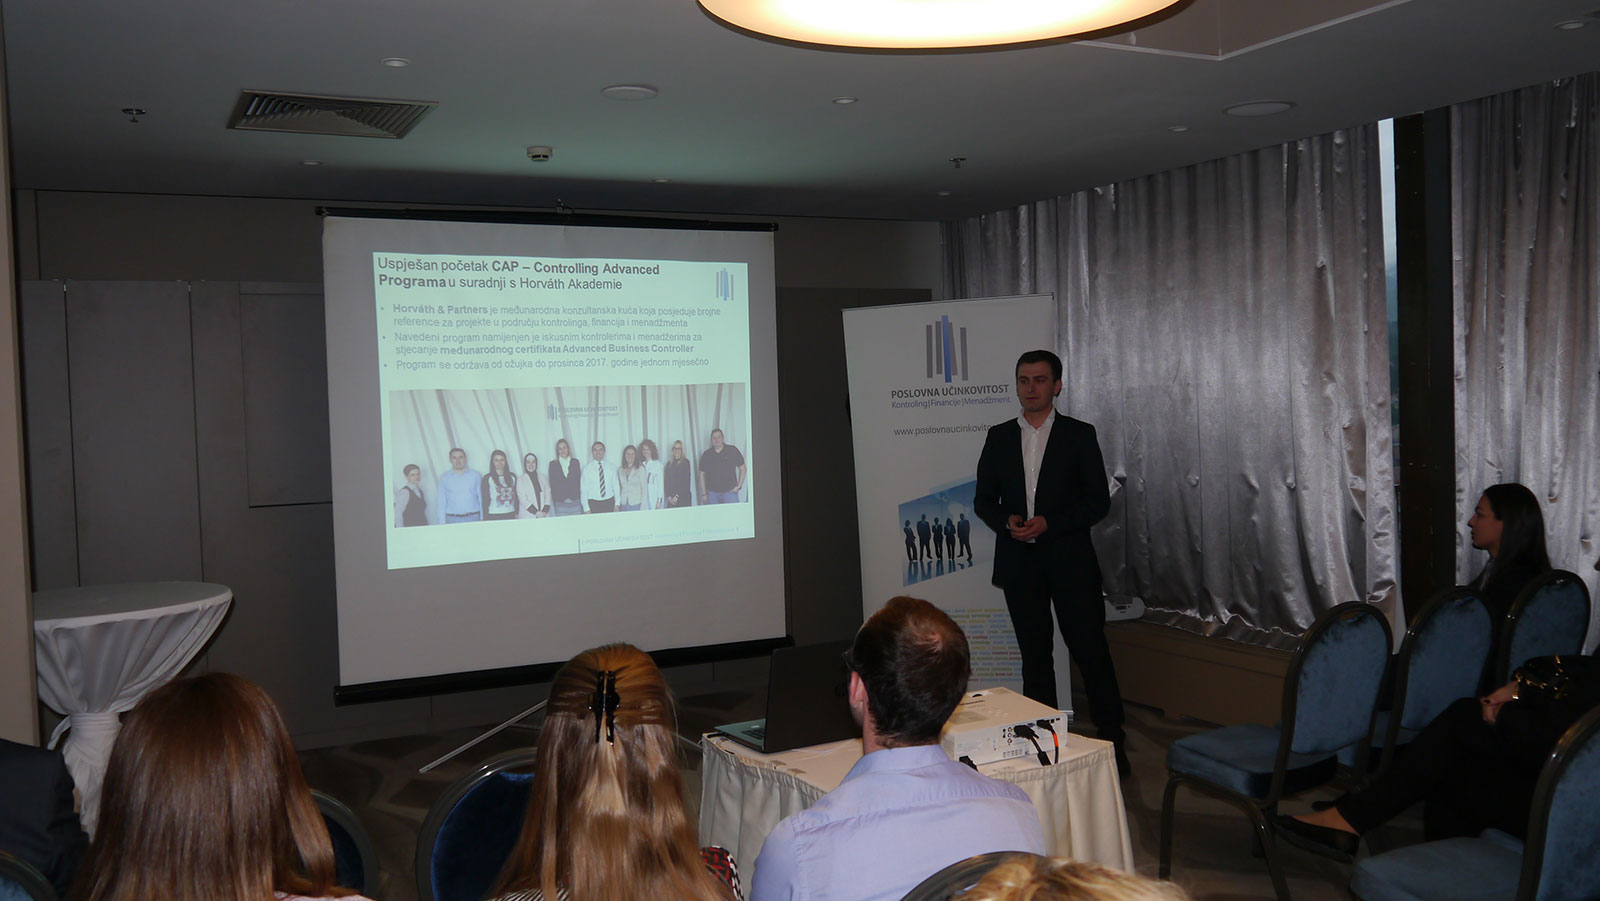 13-controlling-finance-afterwork-p1010757